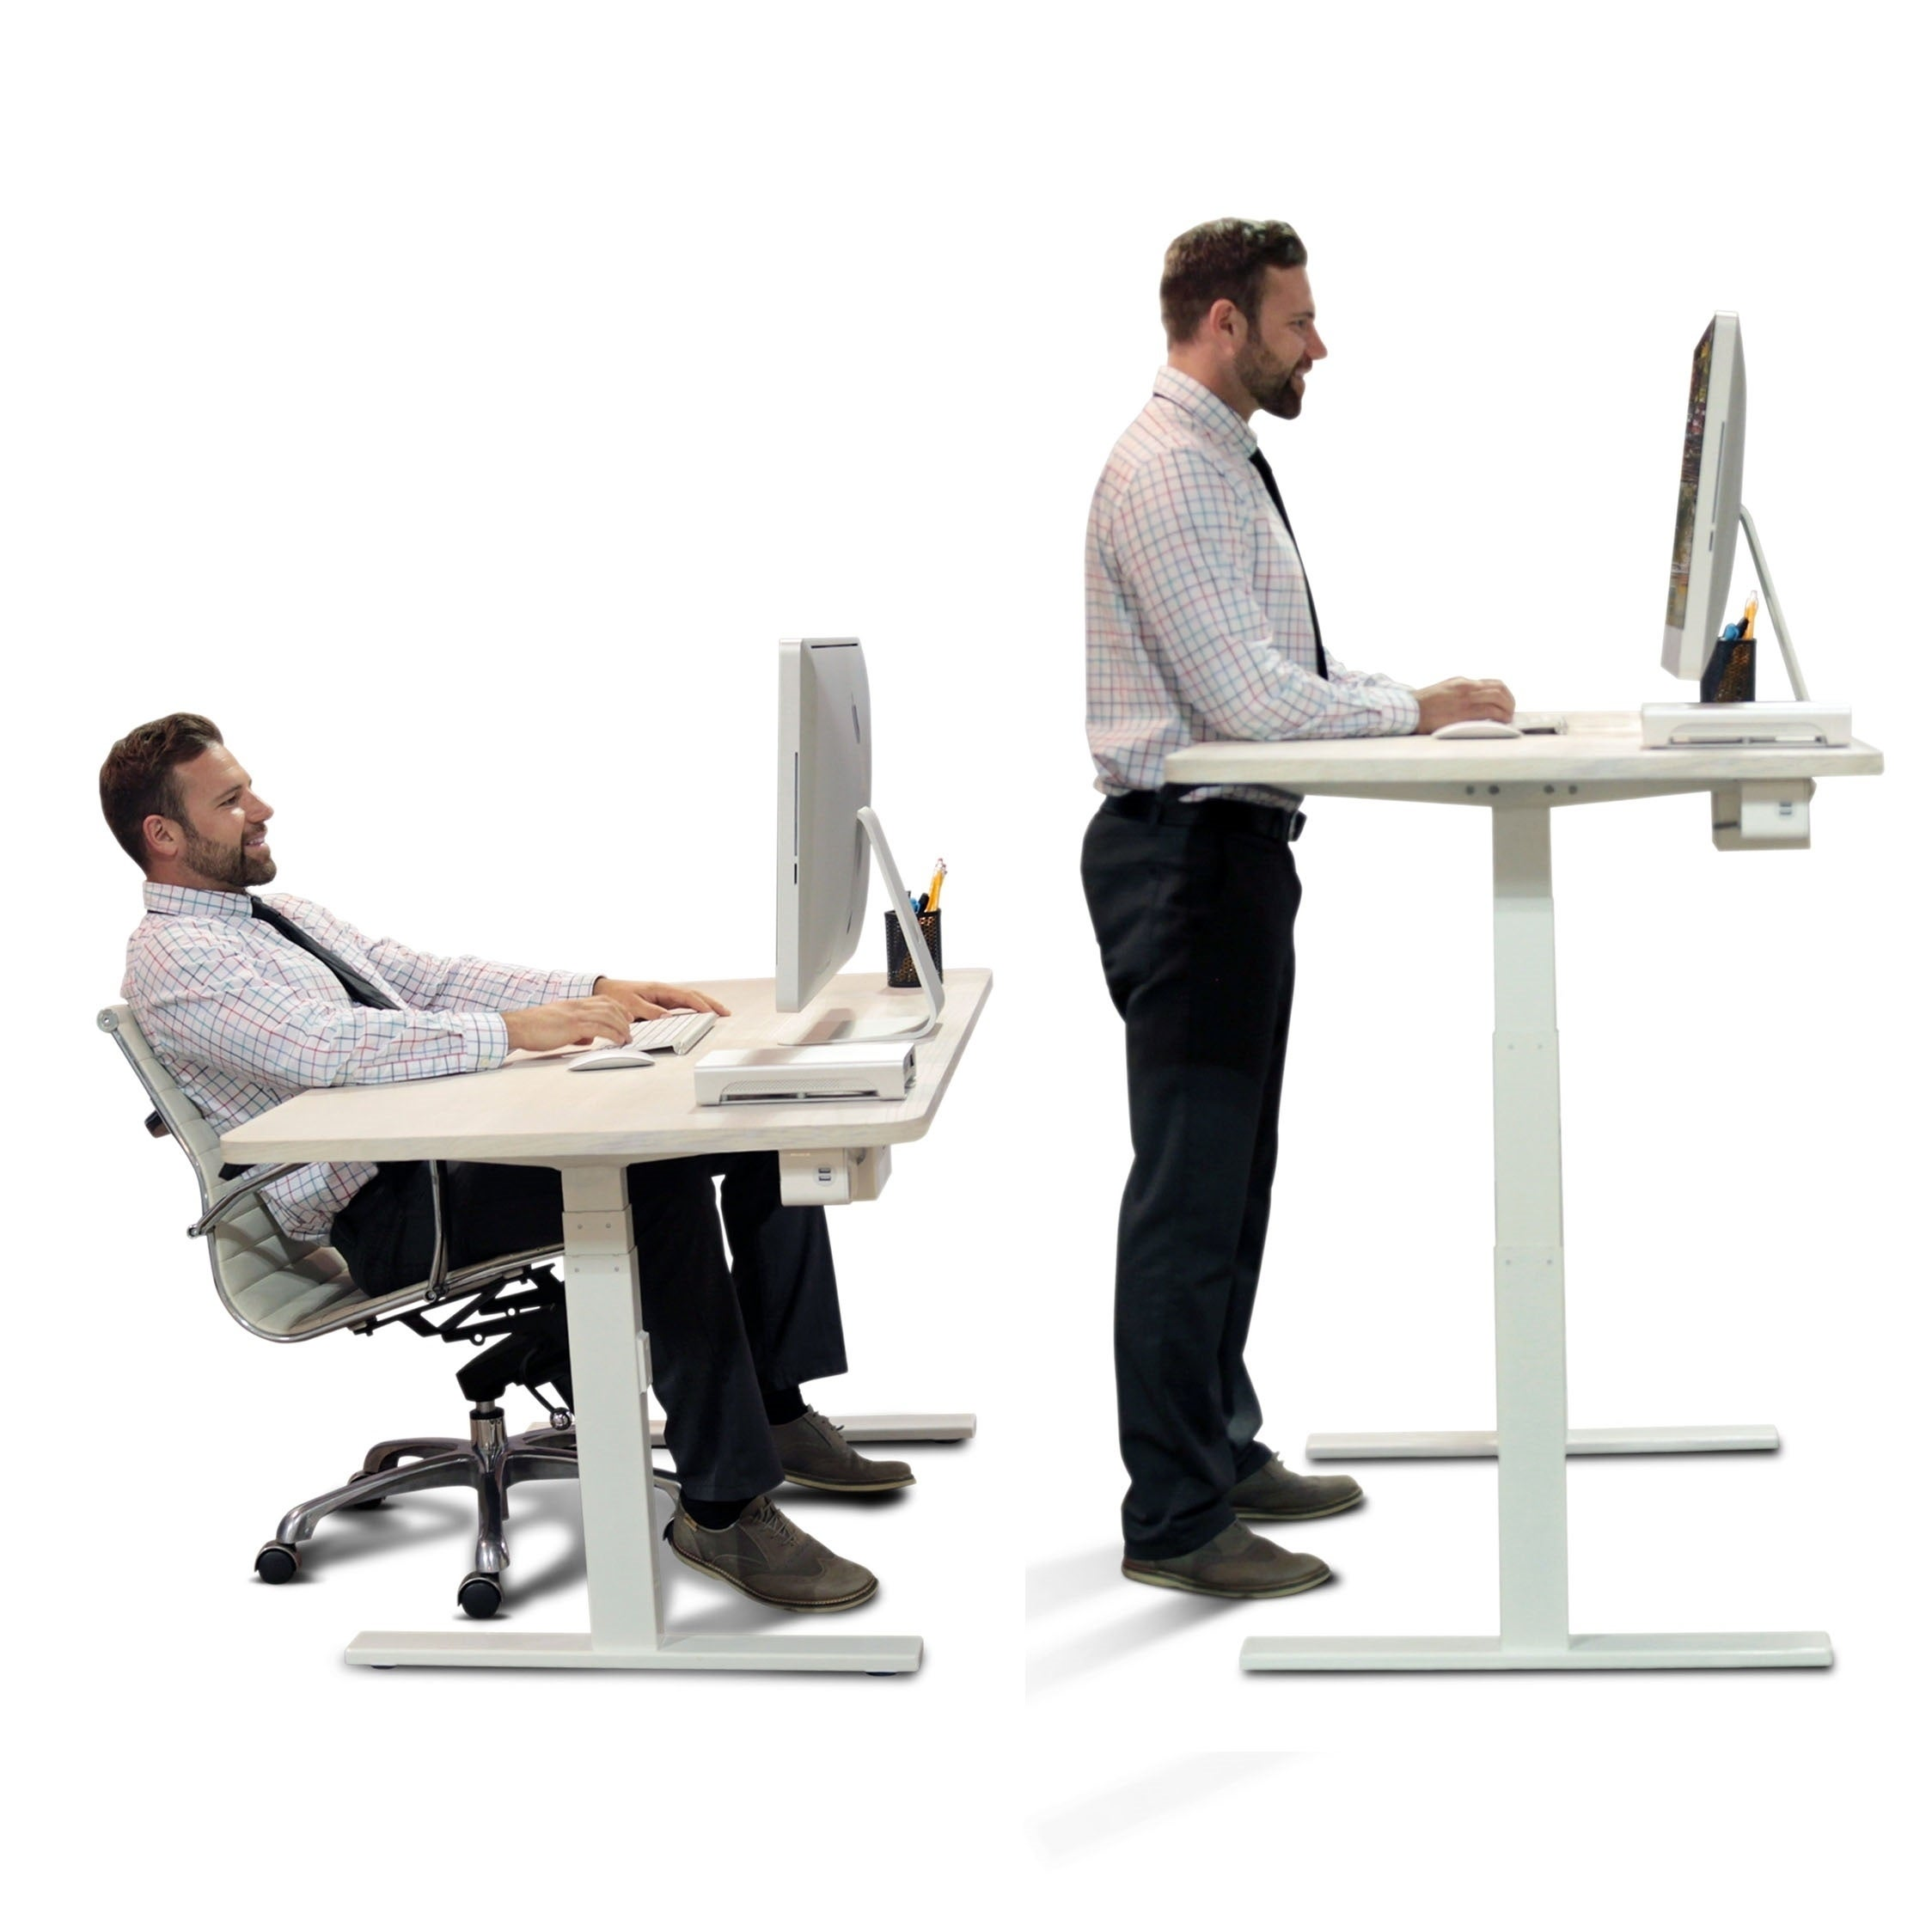 height comparison reviews with decoration home keyboard standing furniture gallery adjustable desk diy dual everest convertible omega platforms